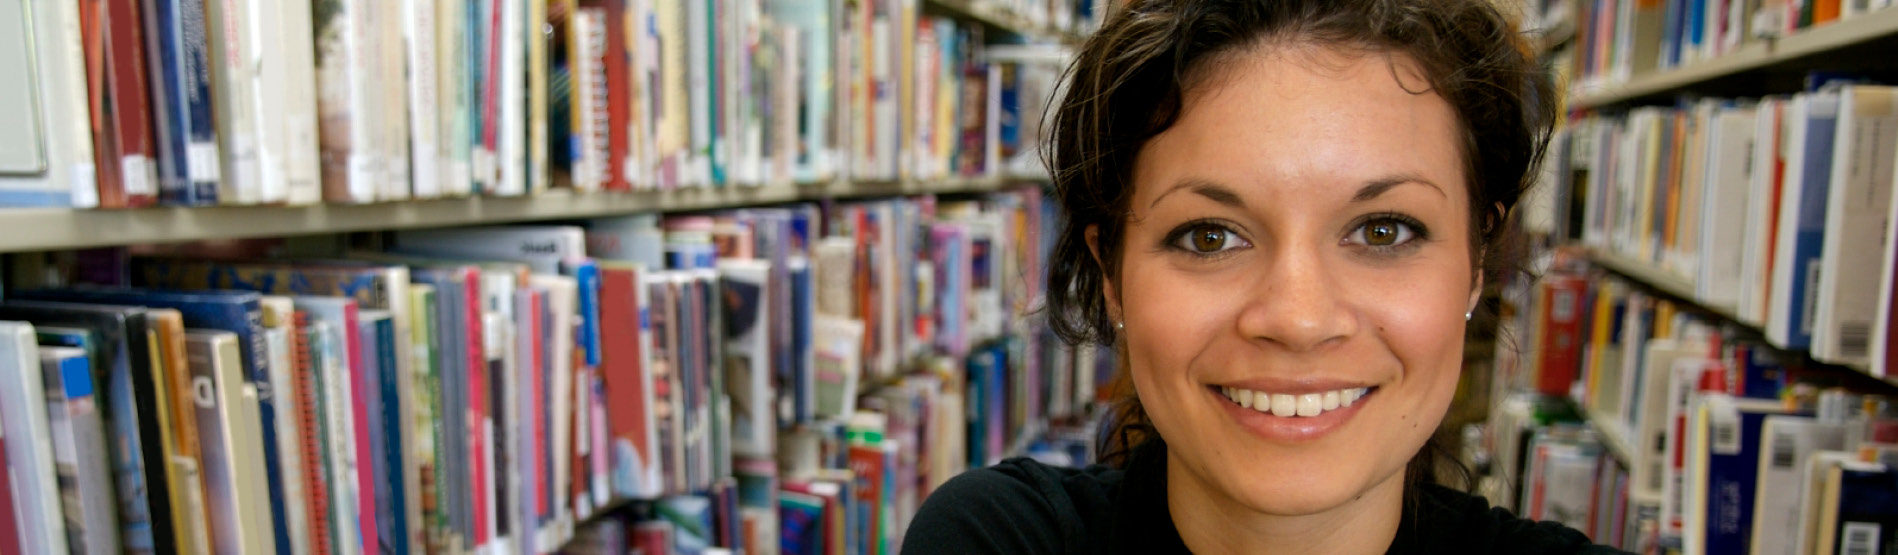 Female student in the library smiling